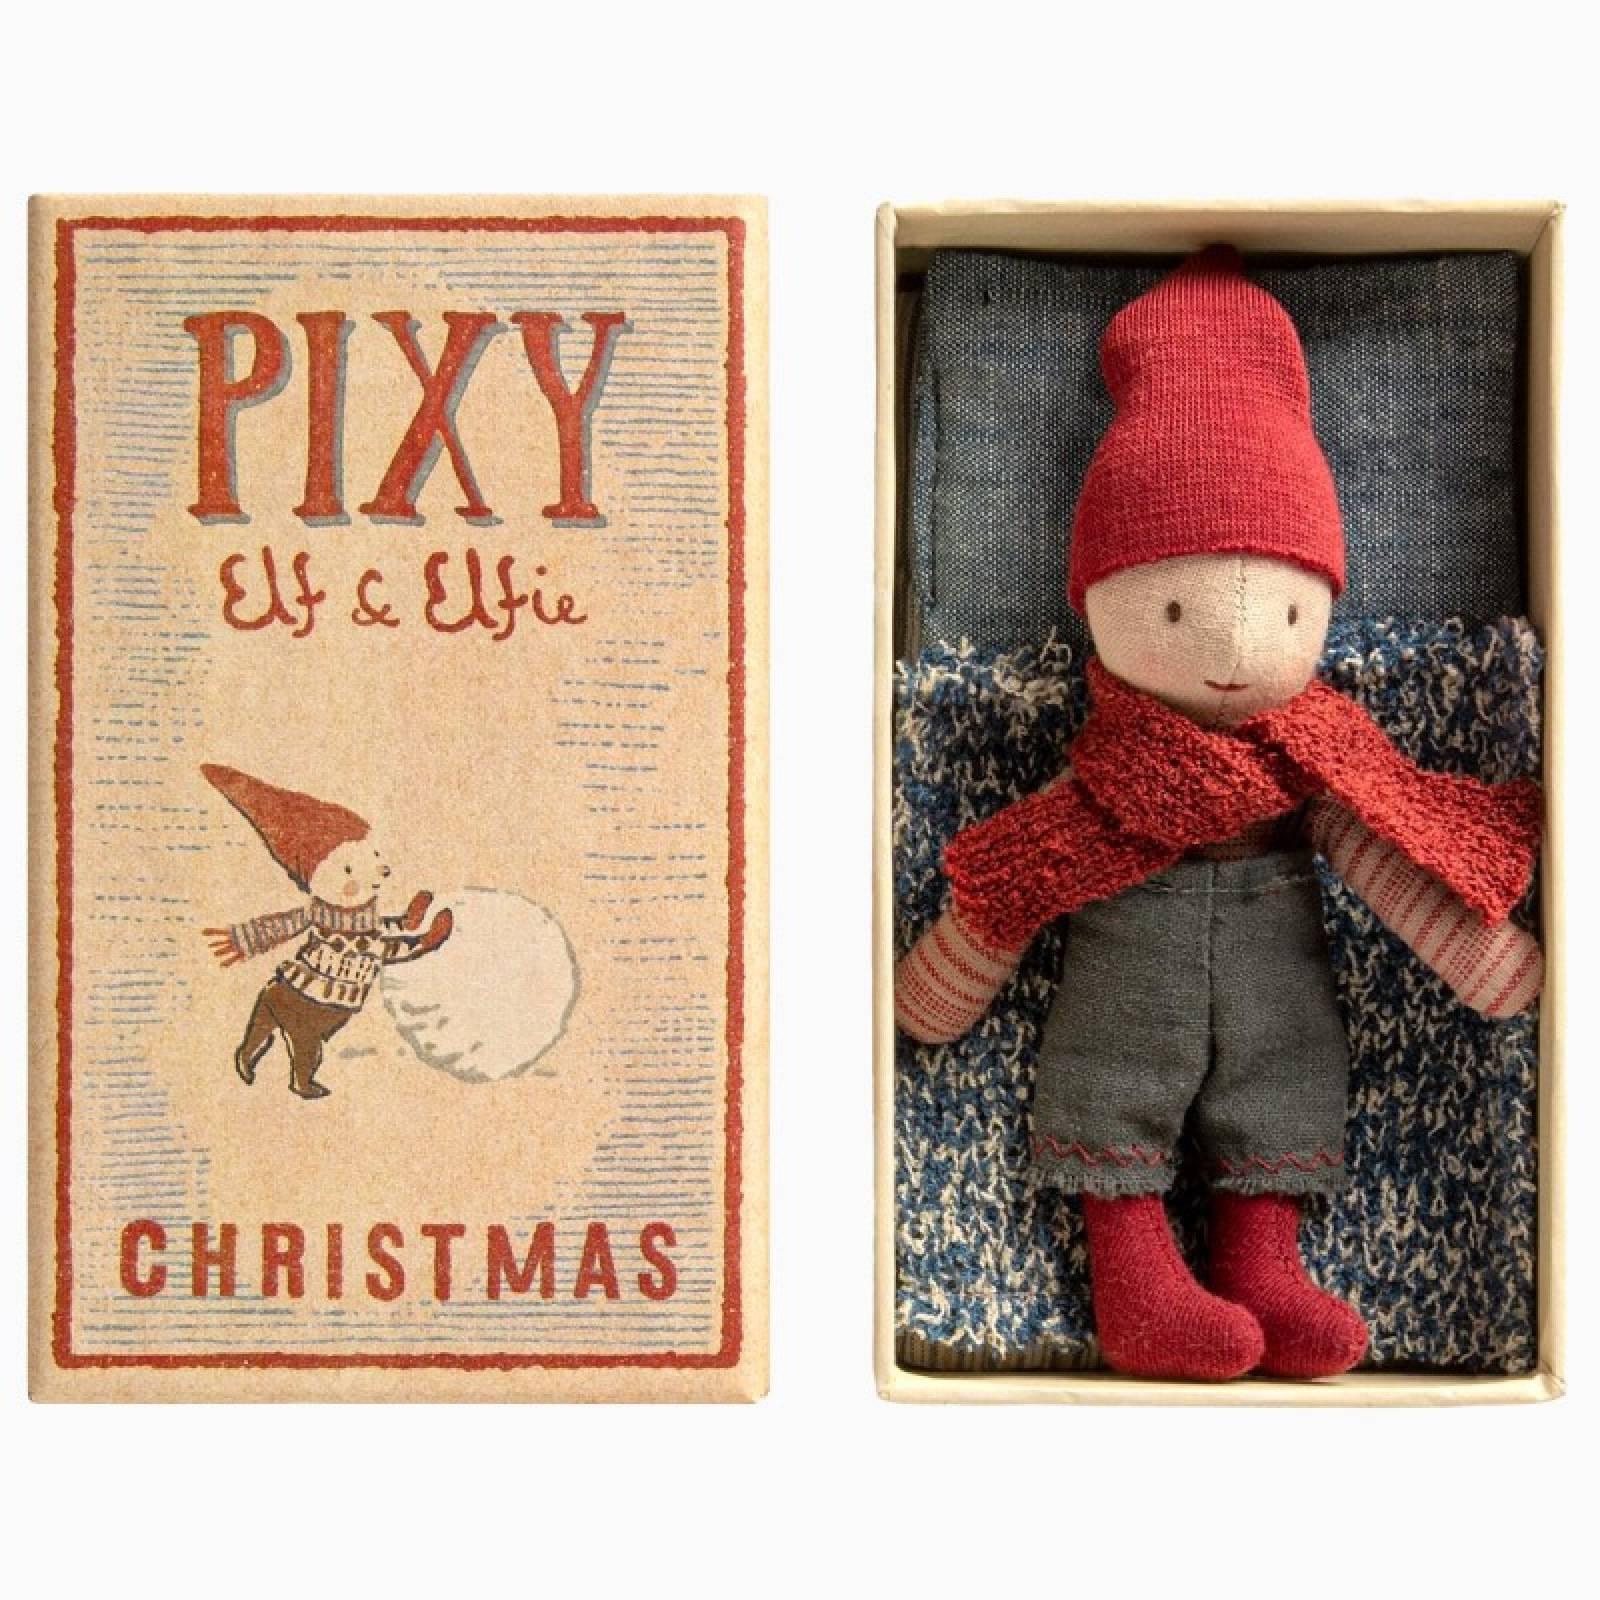 Pixy Elf In A Matchbox Christmas Soft Toy 3+ thumbnails